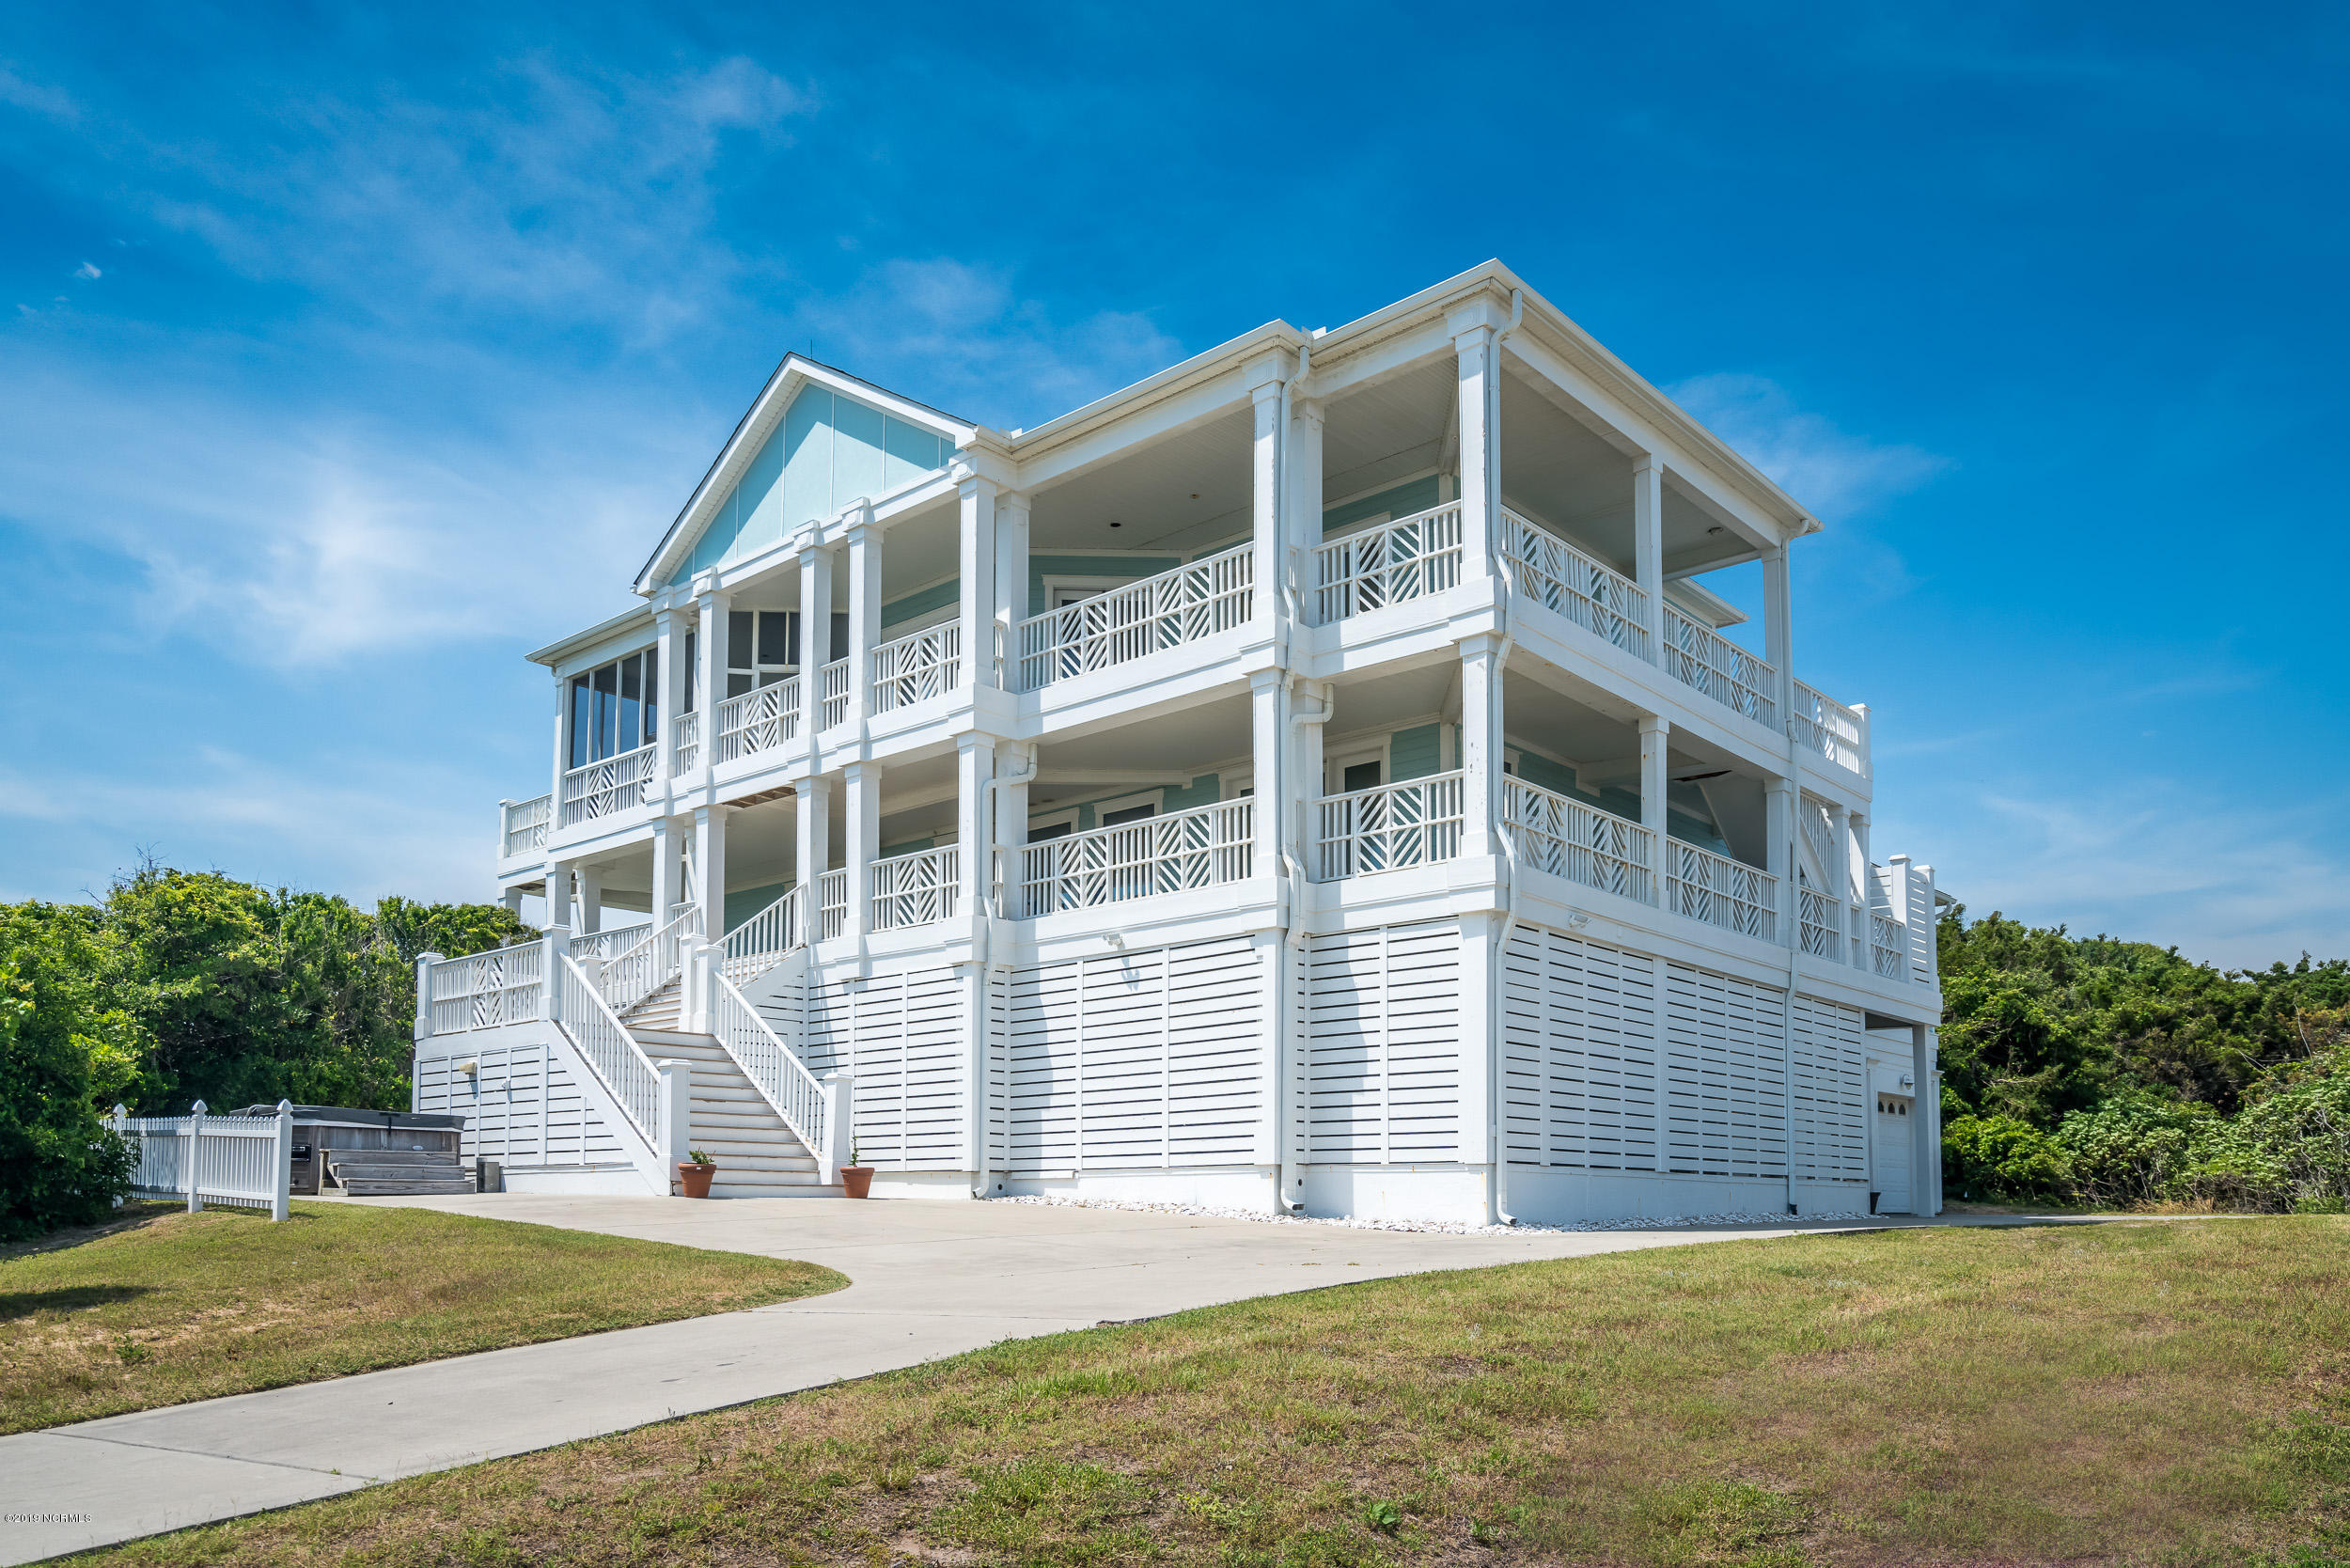 800 Caswell Beach Road Caswell Beach, NC 28465